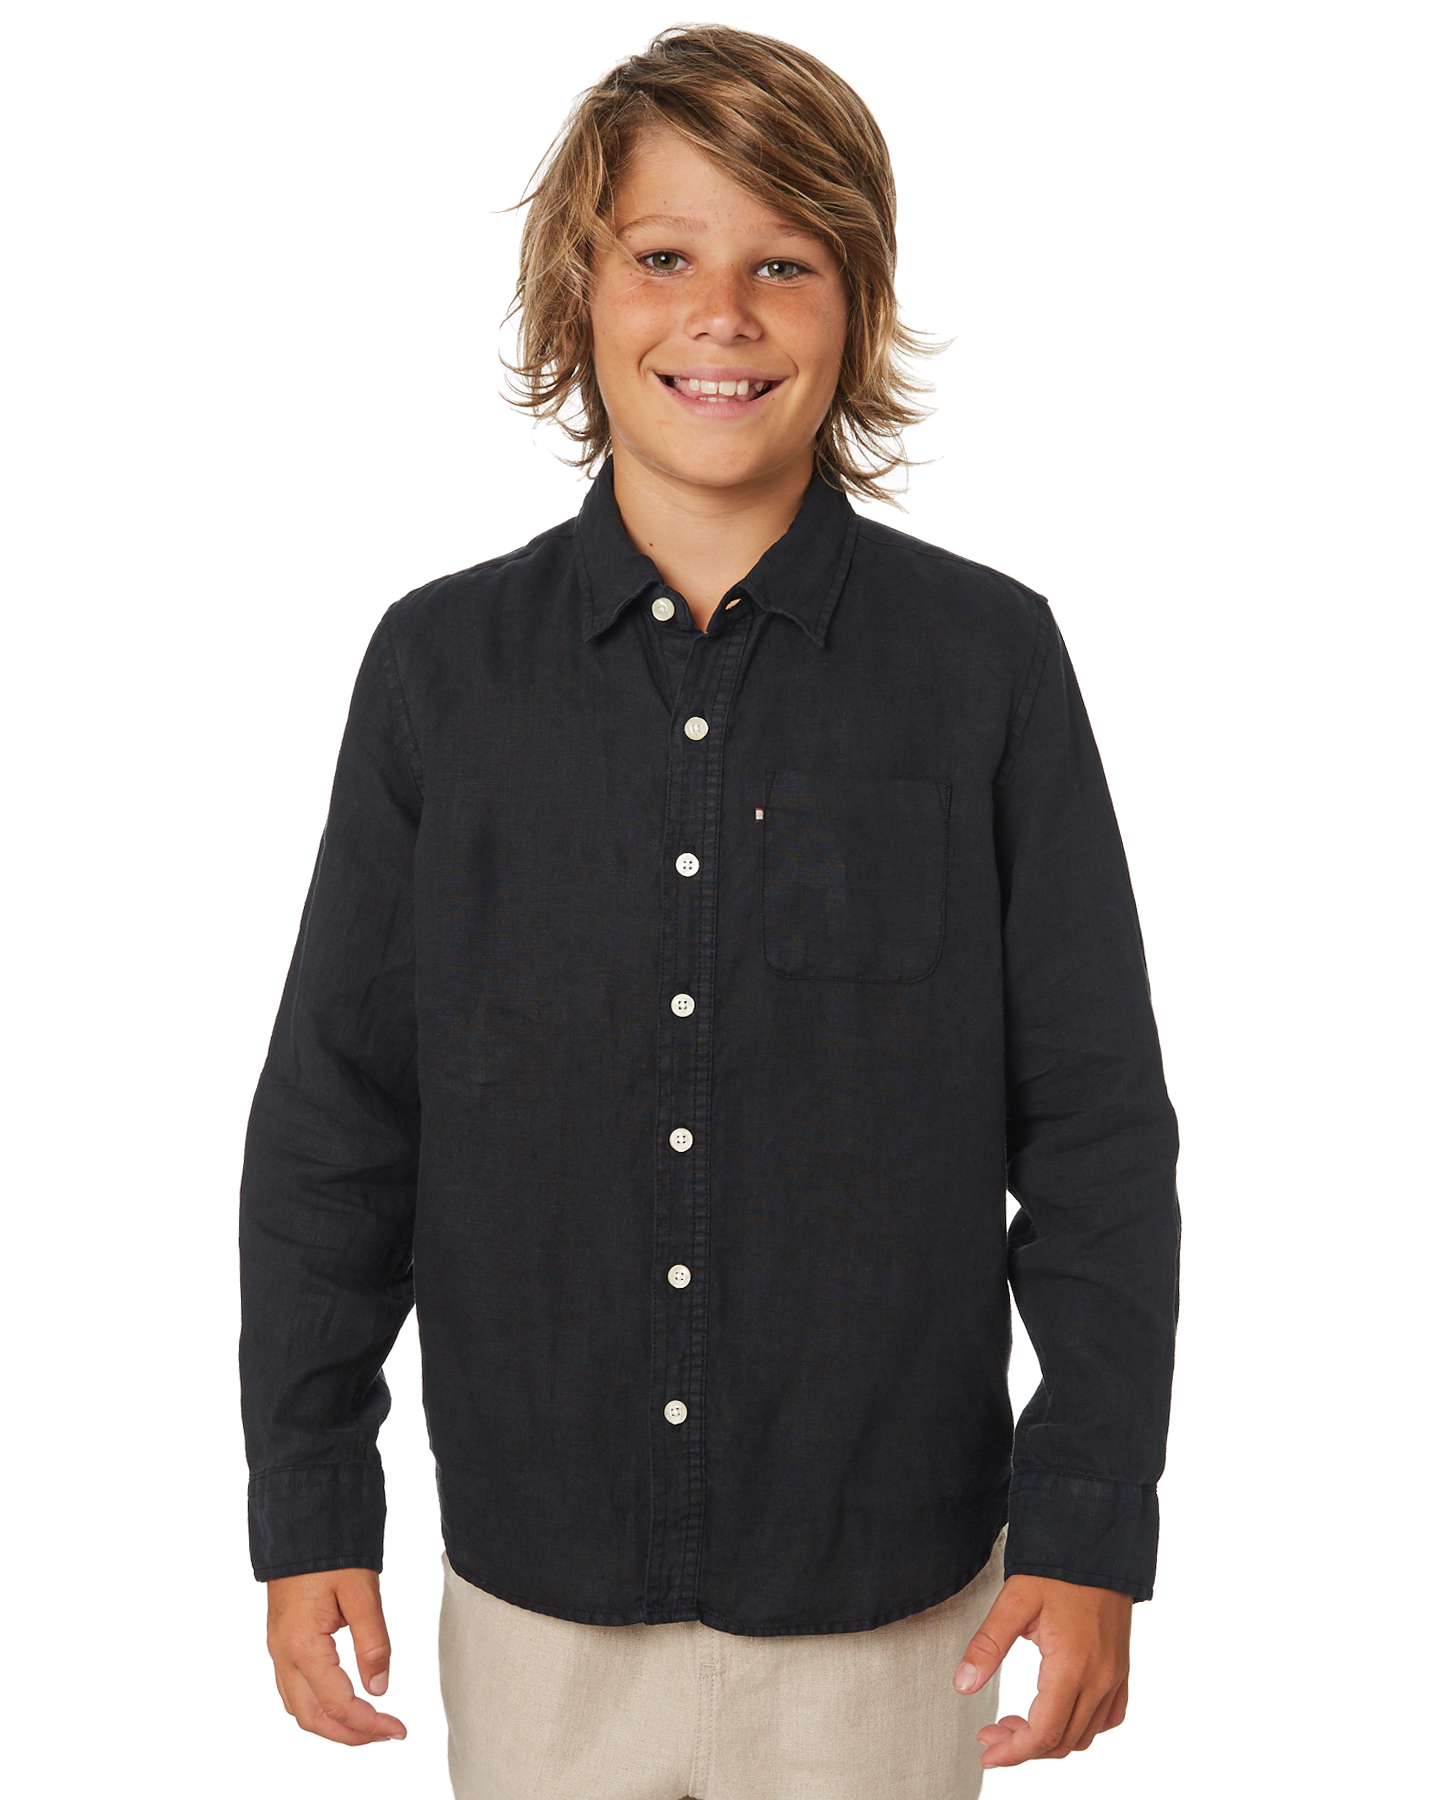 855c4ff3bd Details about New Academy Brand Boys Boys Hampton Linen Shirt - Teens Long  Sleeve Linen Black